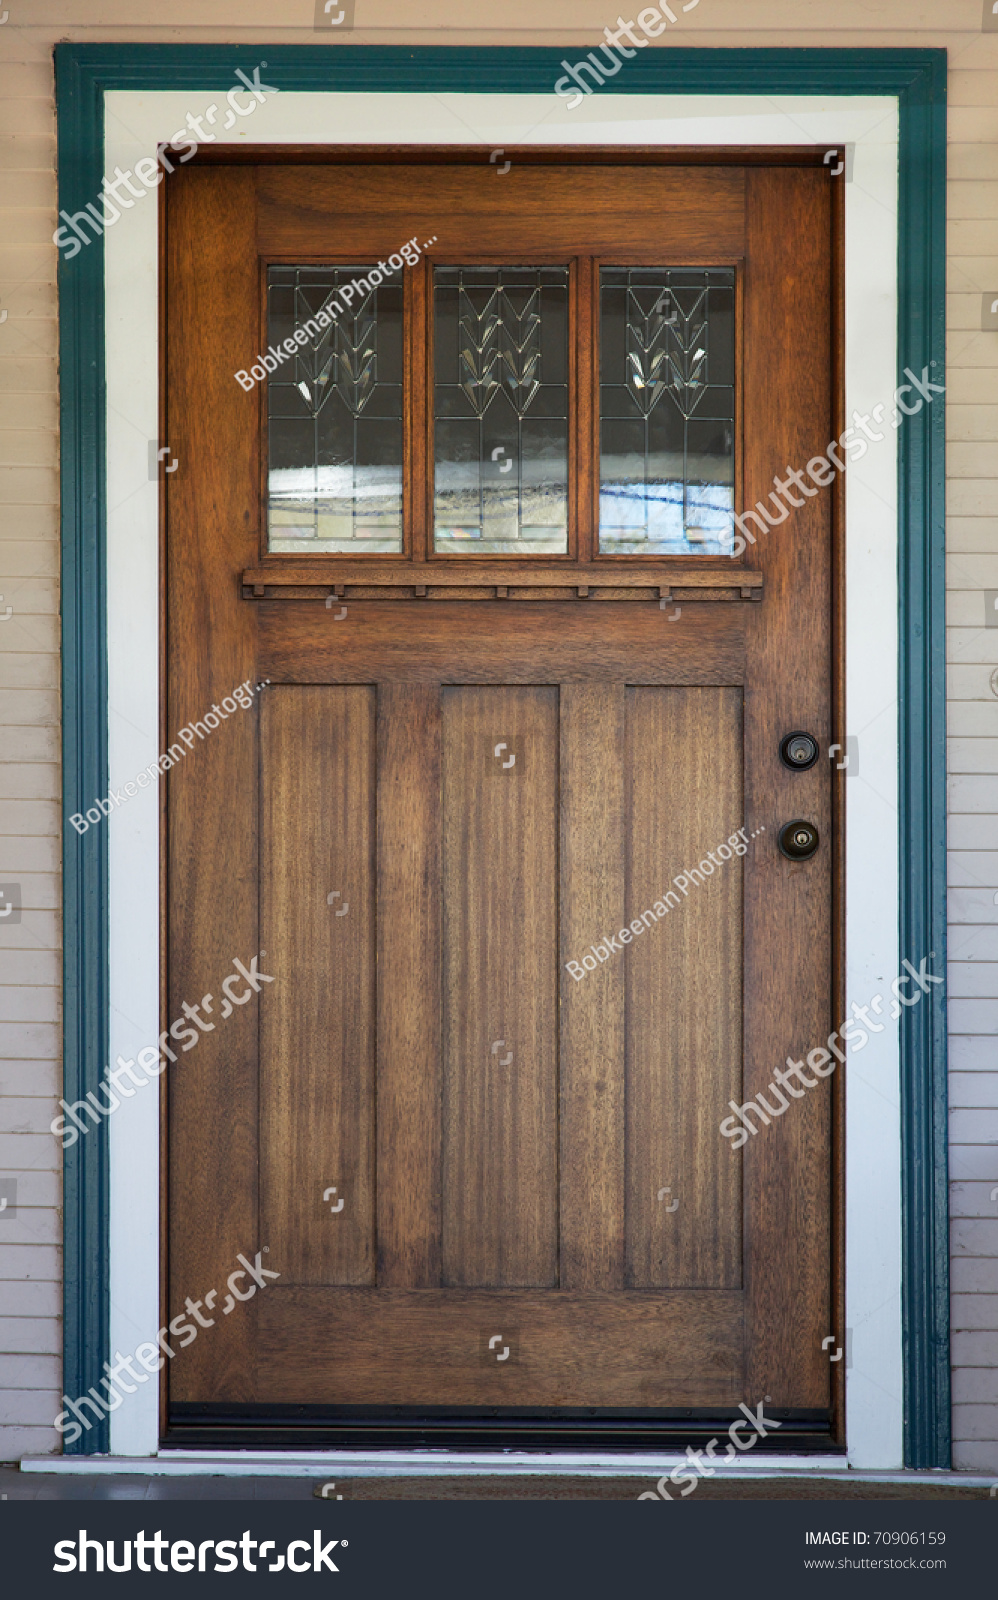 Craftsman Deco Style Window In Mission Style Stained Wood Door With Green  And White Trip